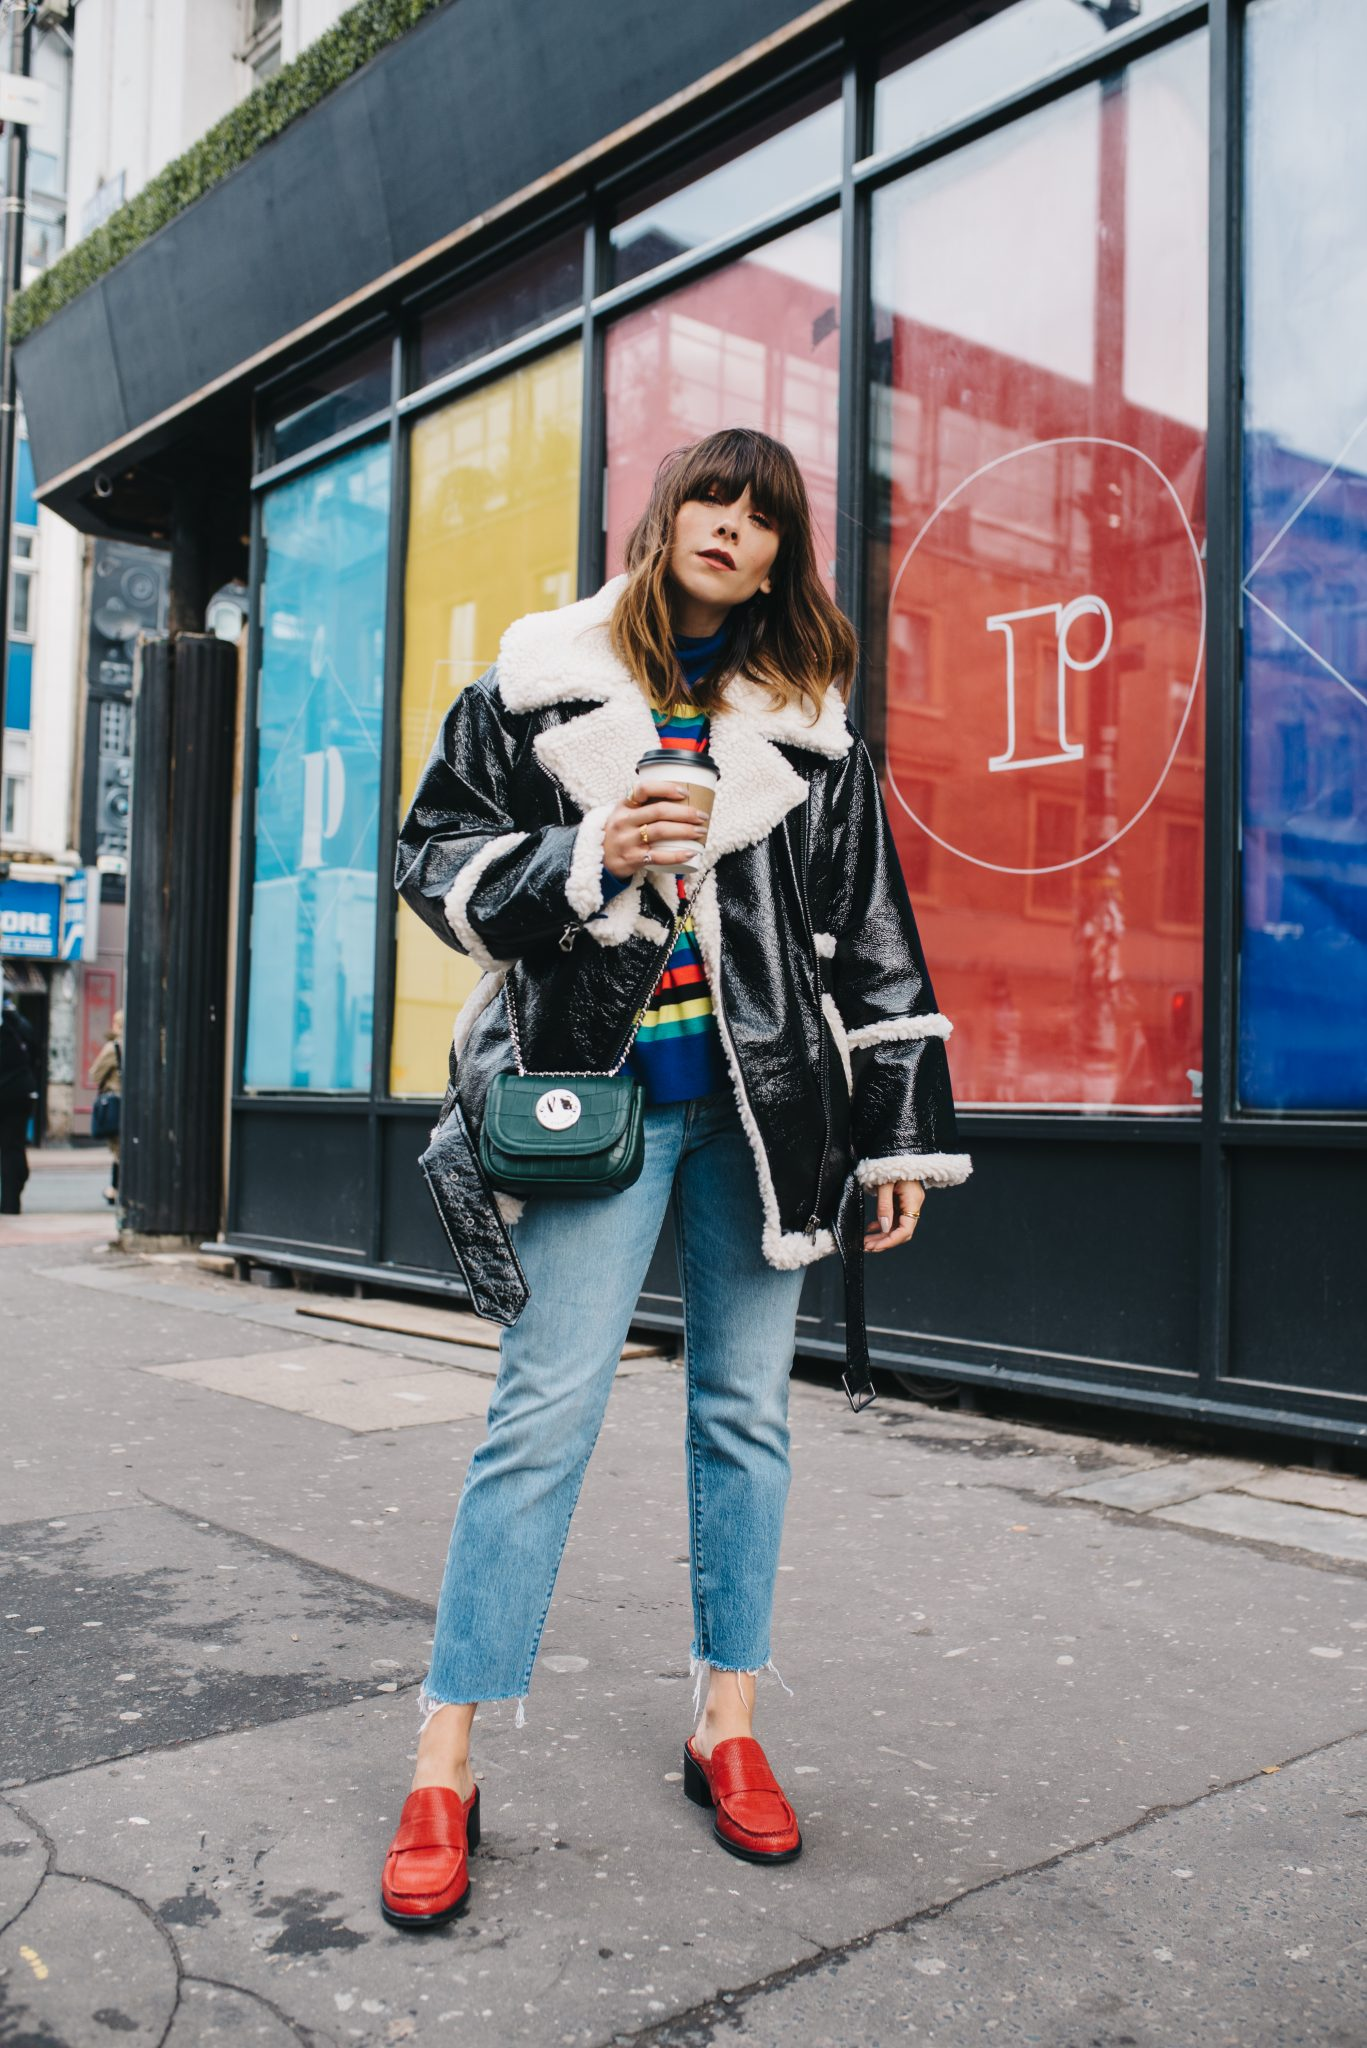 HOW TO WEAR THE AVIATOR COAT TREND